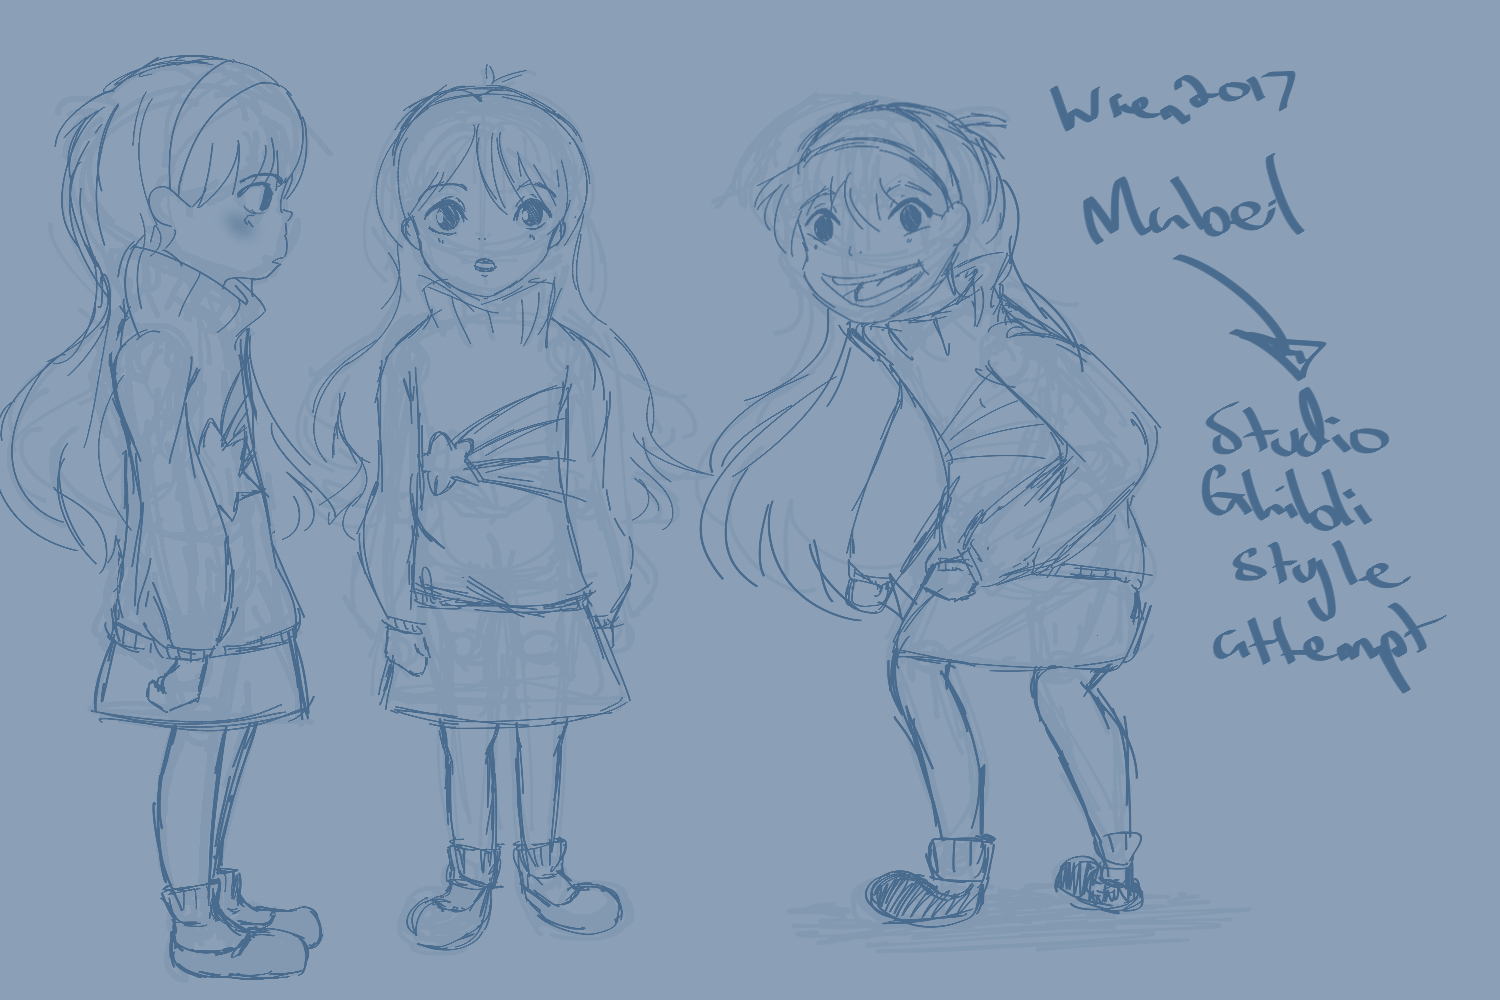 Sketches of Mabel in style of Studio Ghibli